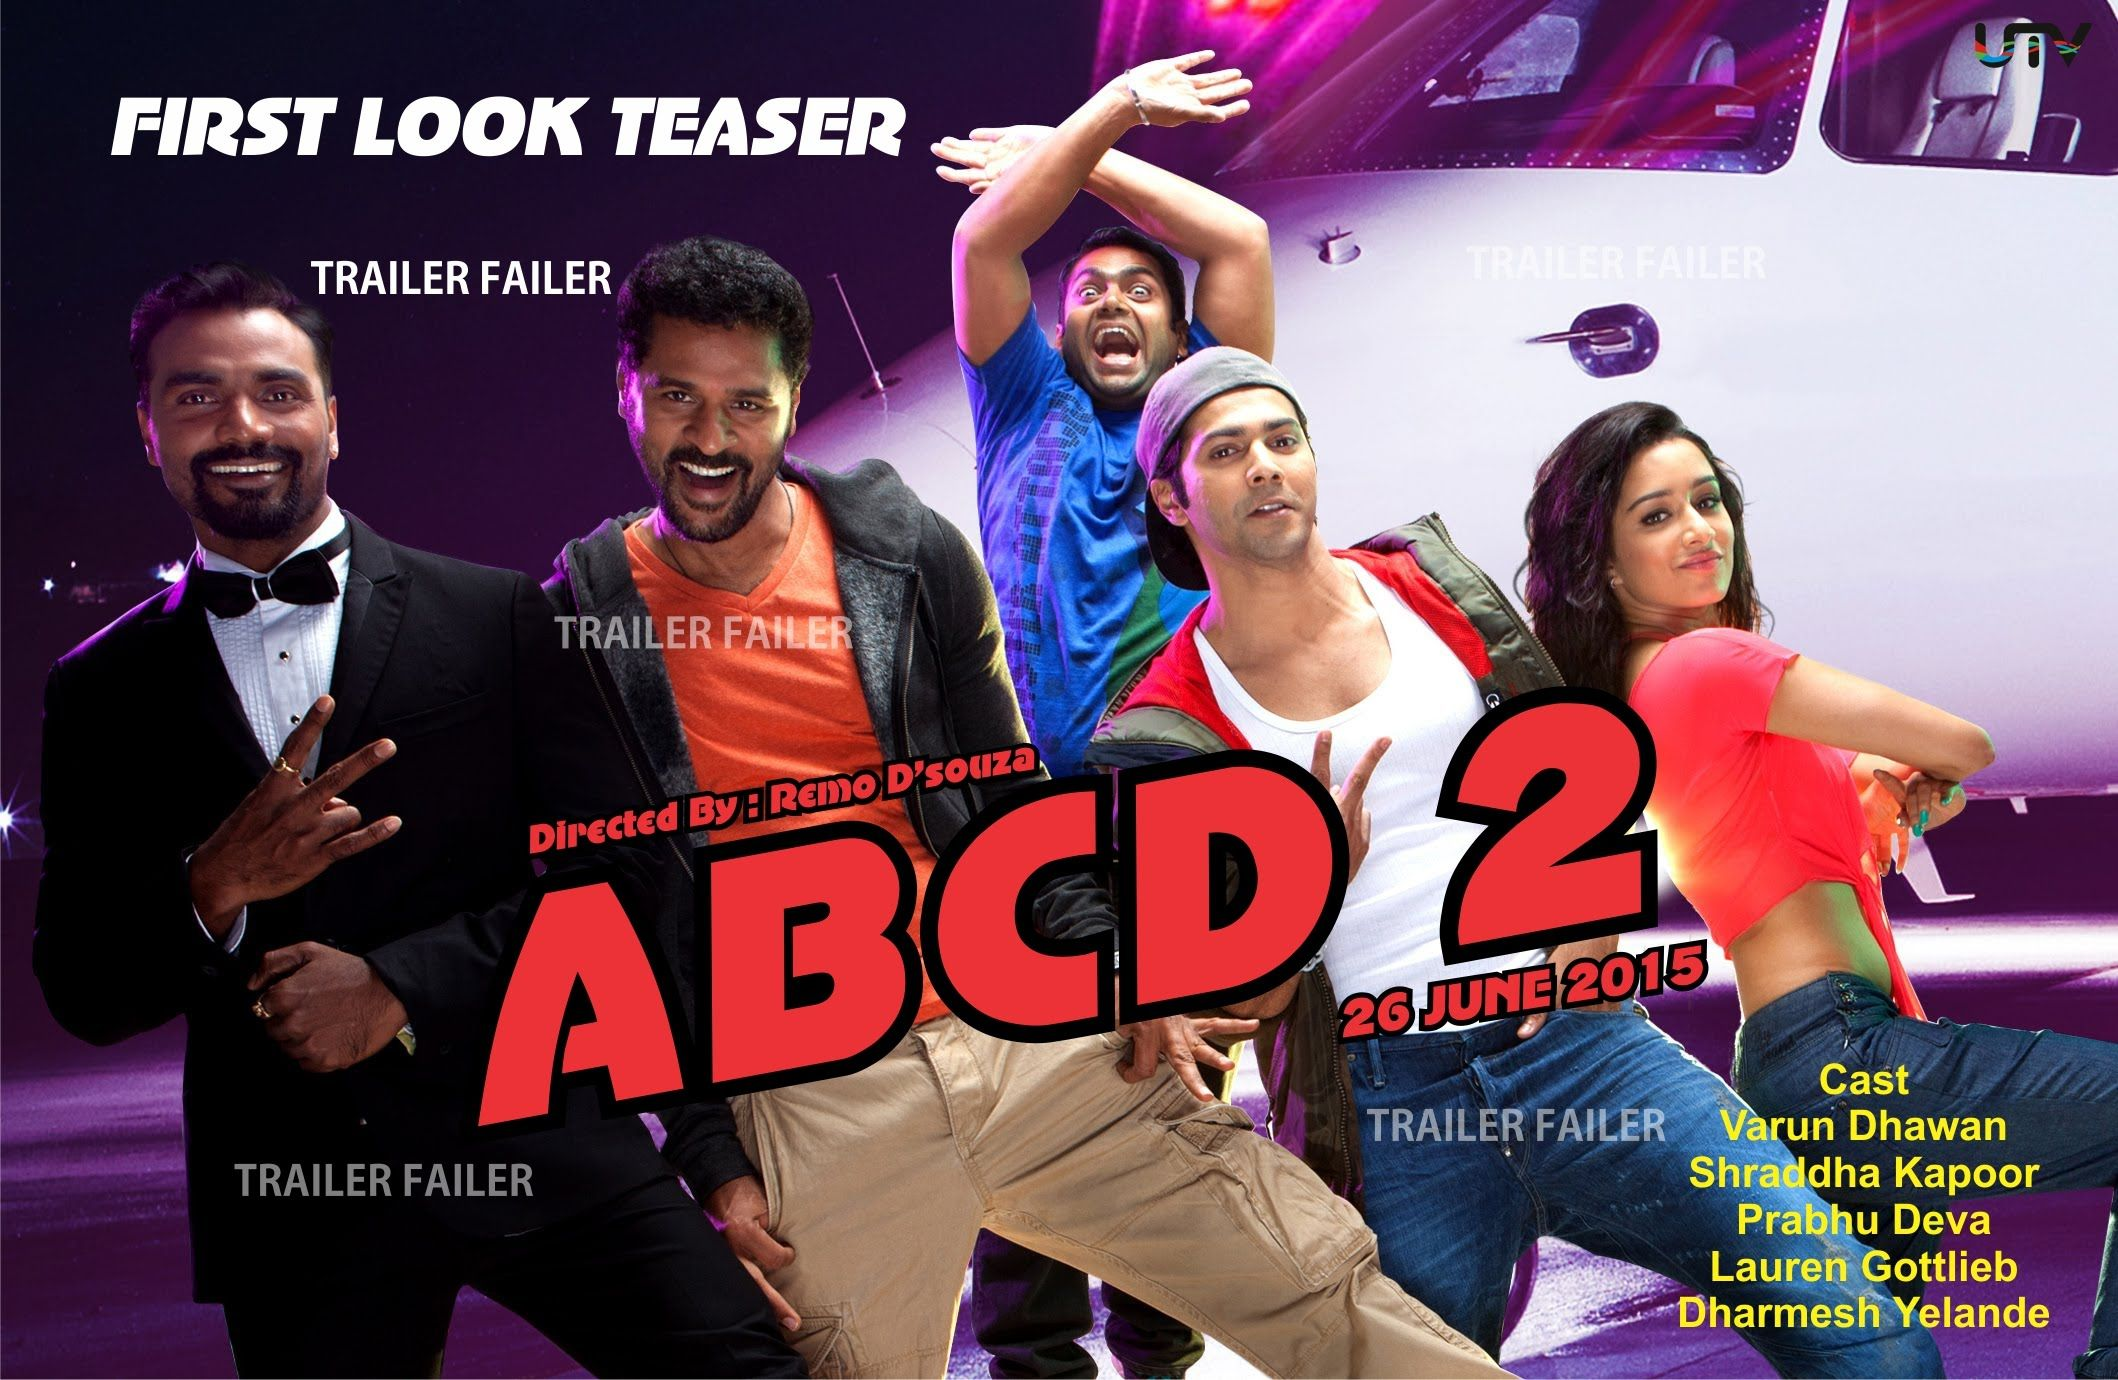 abcd 2 full movie watch online free youtube